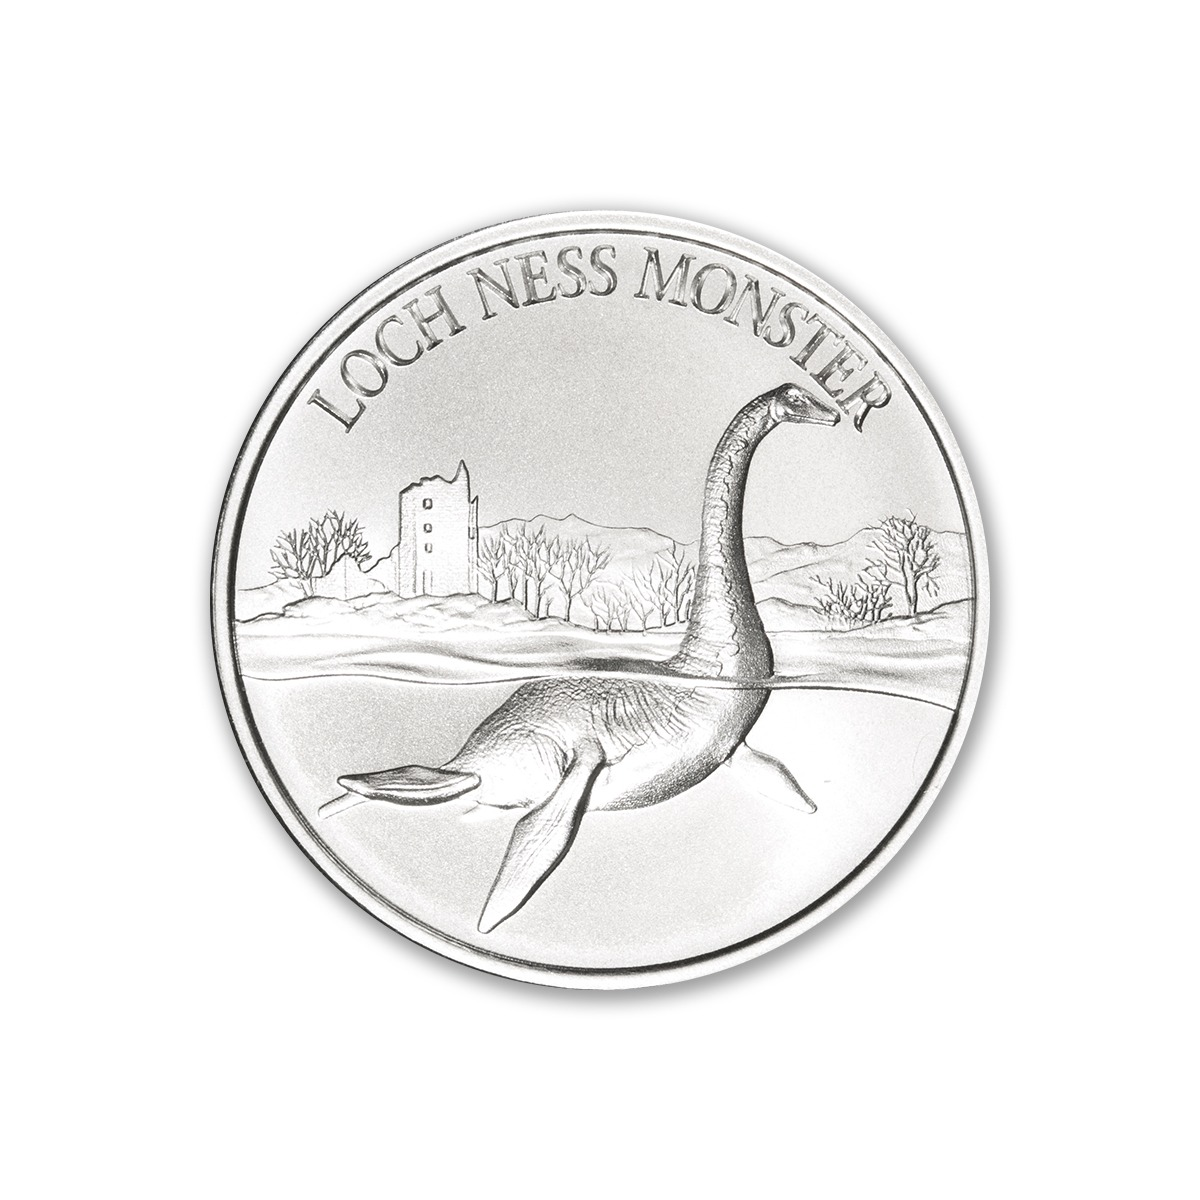 LOCH NESS MONSTER – 1 TROY OUNCE – 39MM